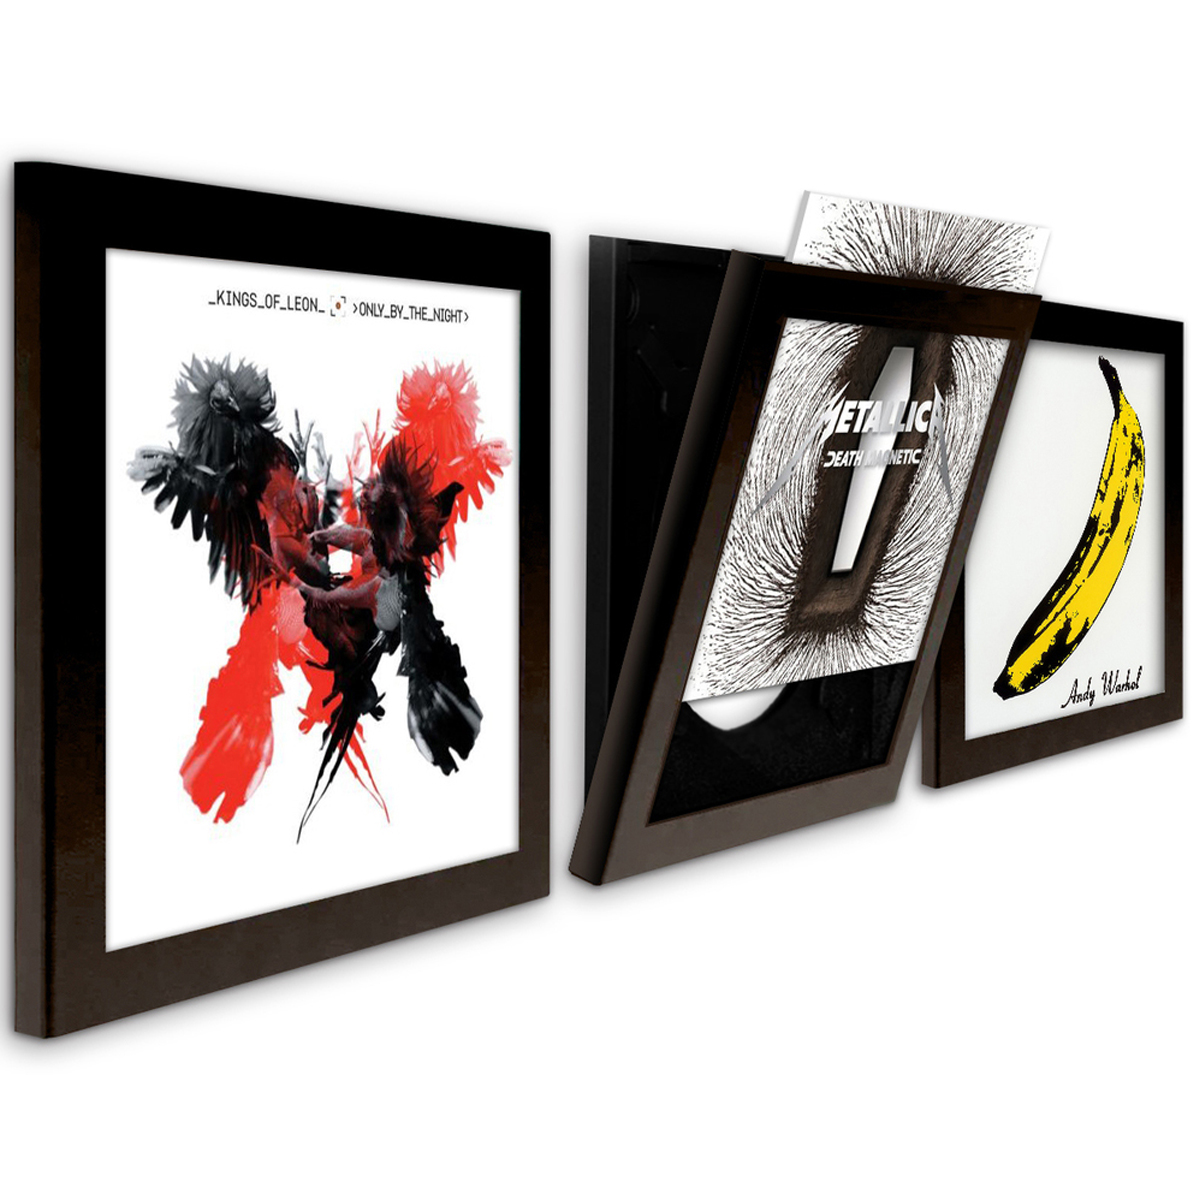 Art Vinyl Record Frame